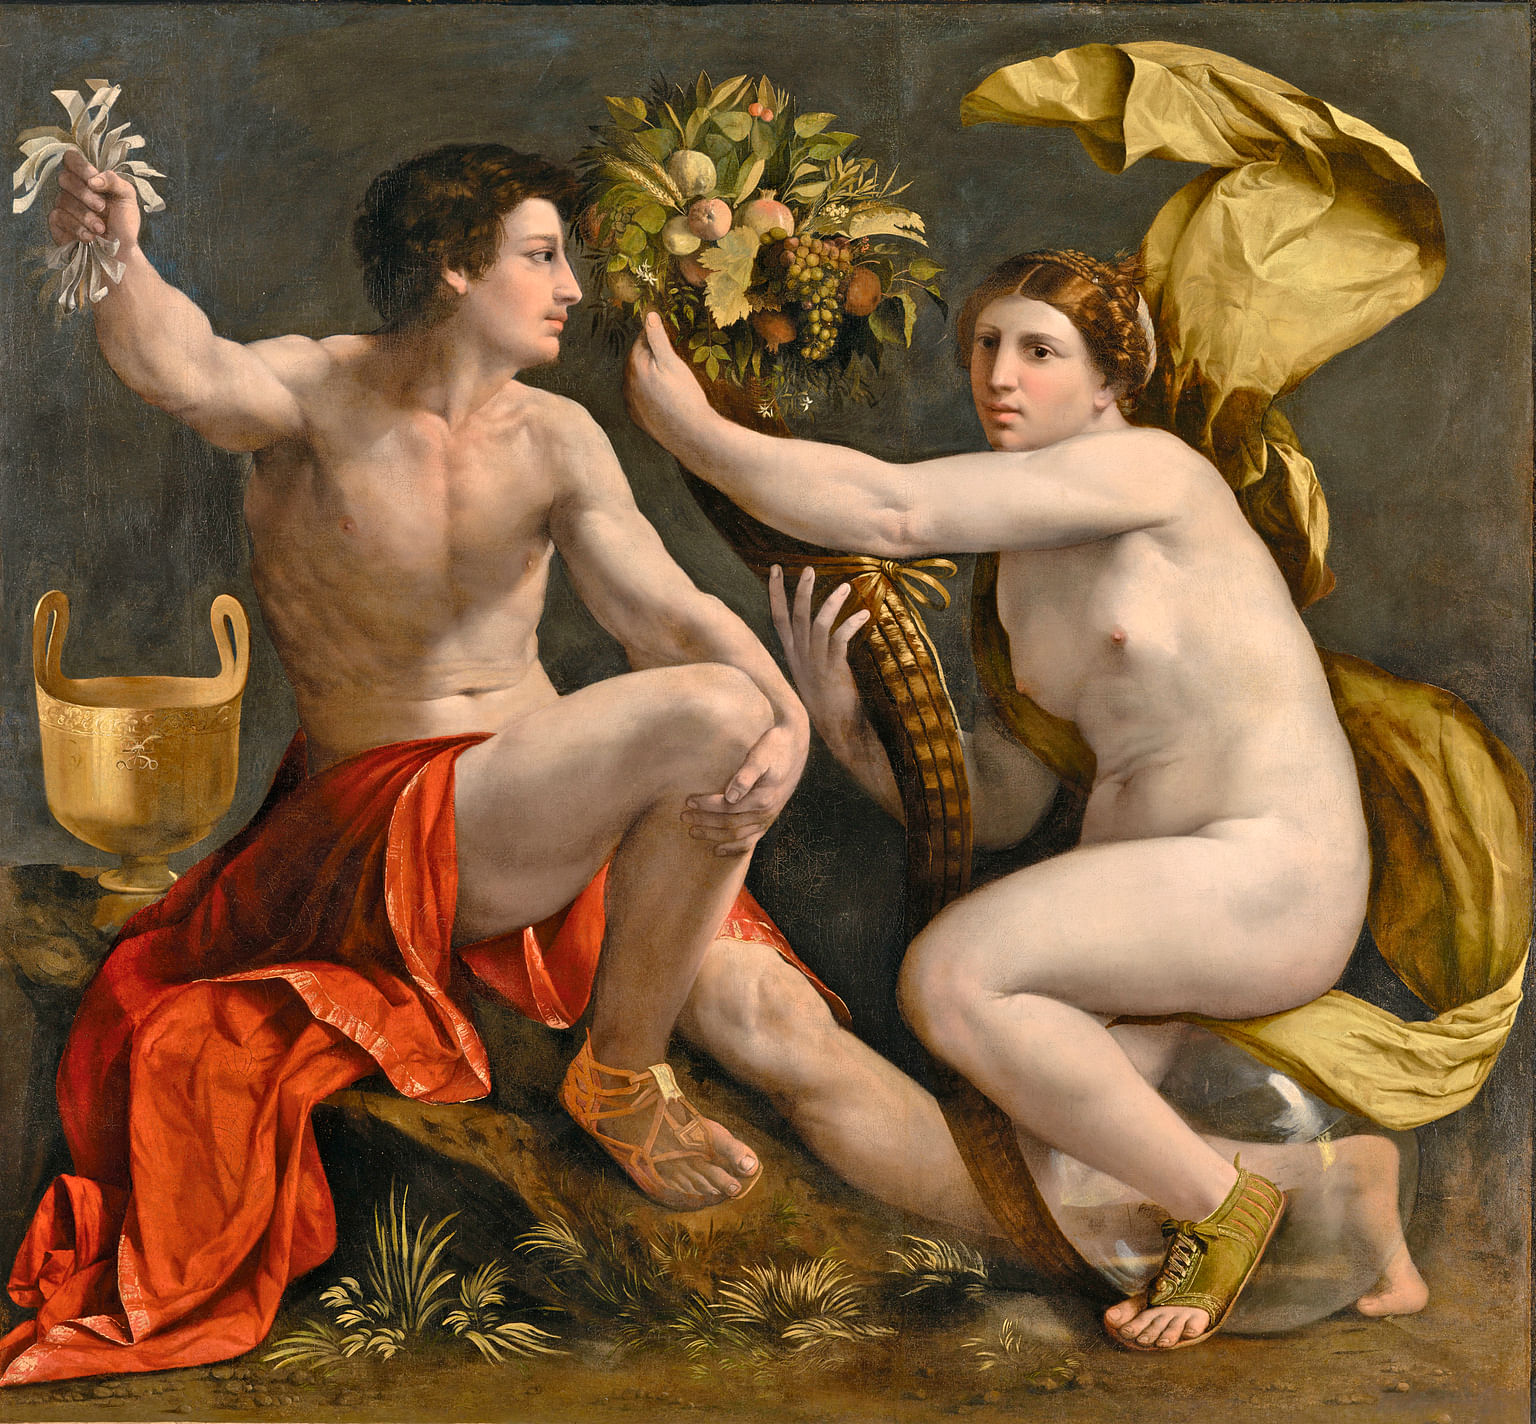 Italian artist Dosso Dossi's oil on canvas, Allegory Of Fortune (1530, right), is featured in The Renaissance Nude exhibition.